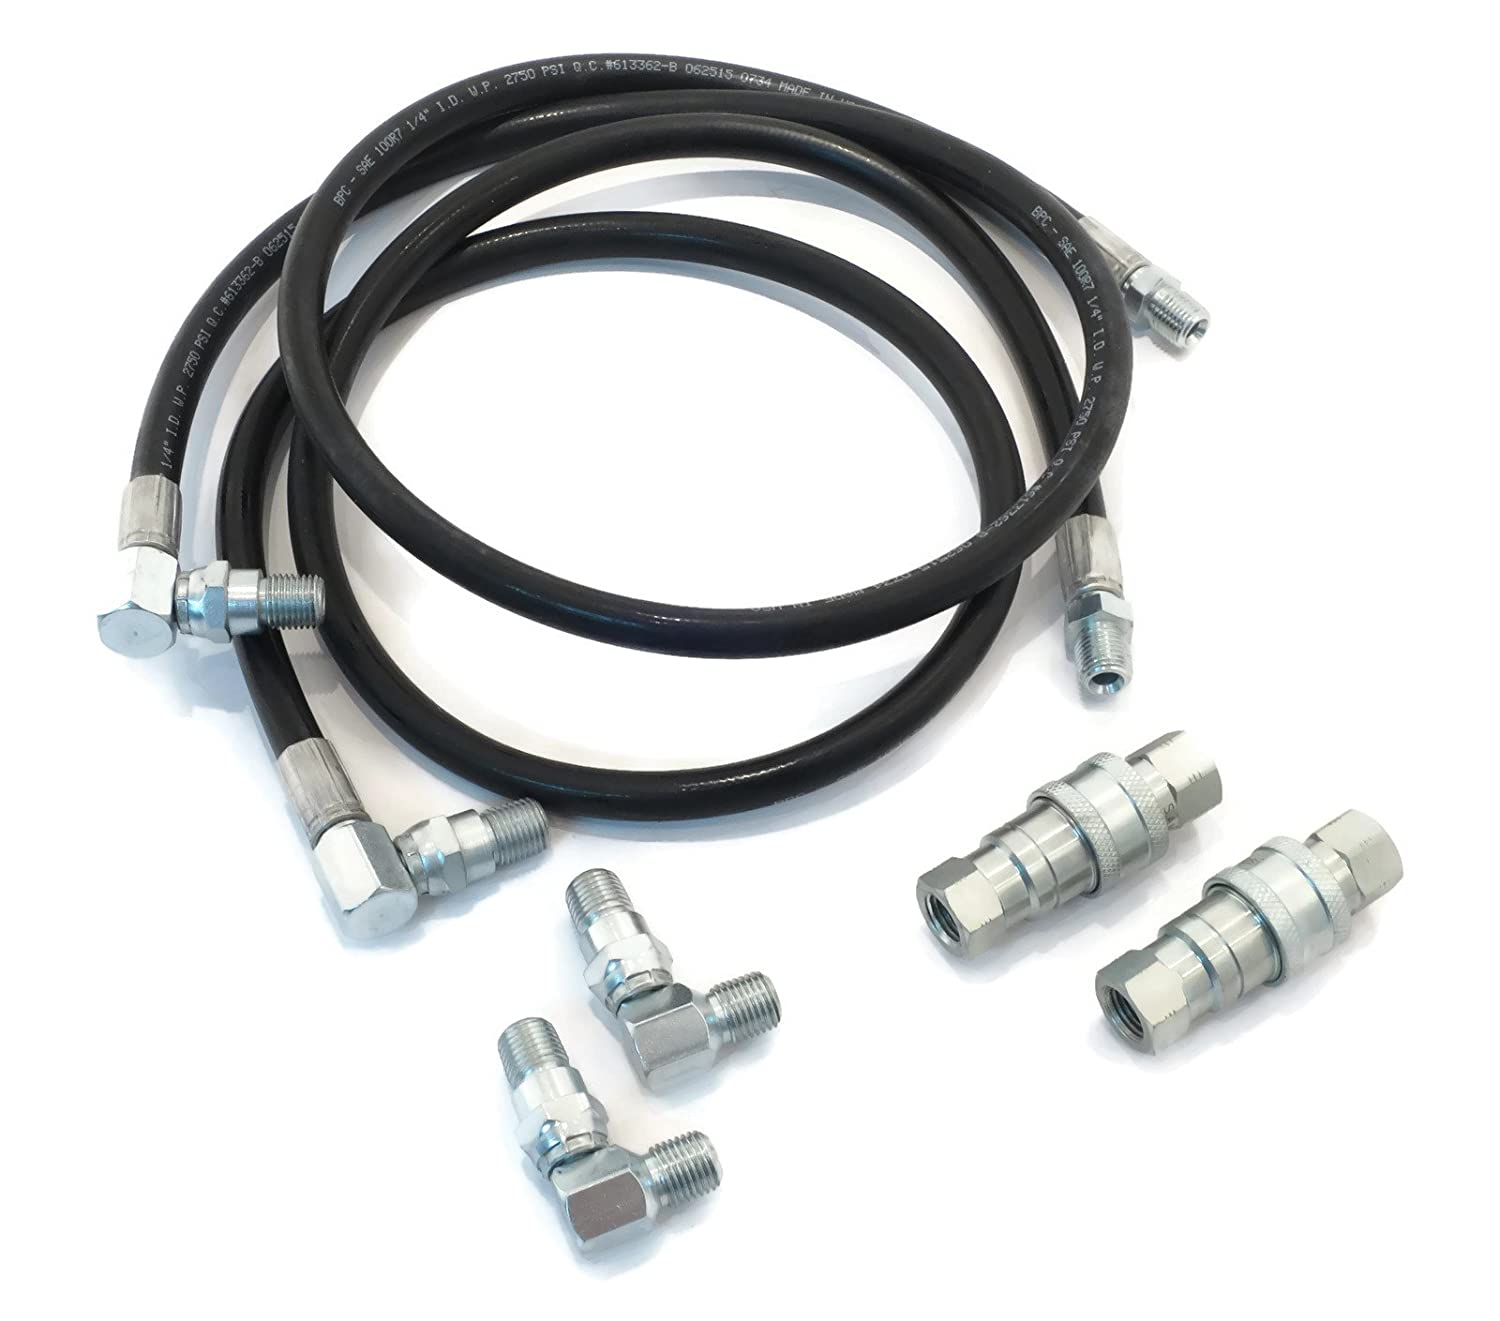 71t06UvIbIL._SL1500_ amazon com power angle hose & fittings replacement kit for e47  at crackthecode.co